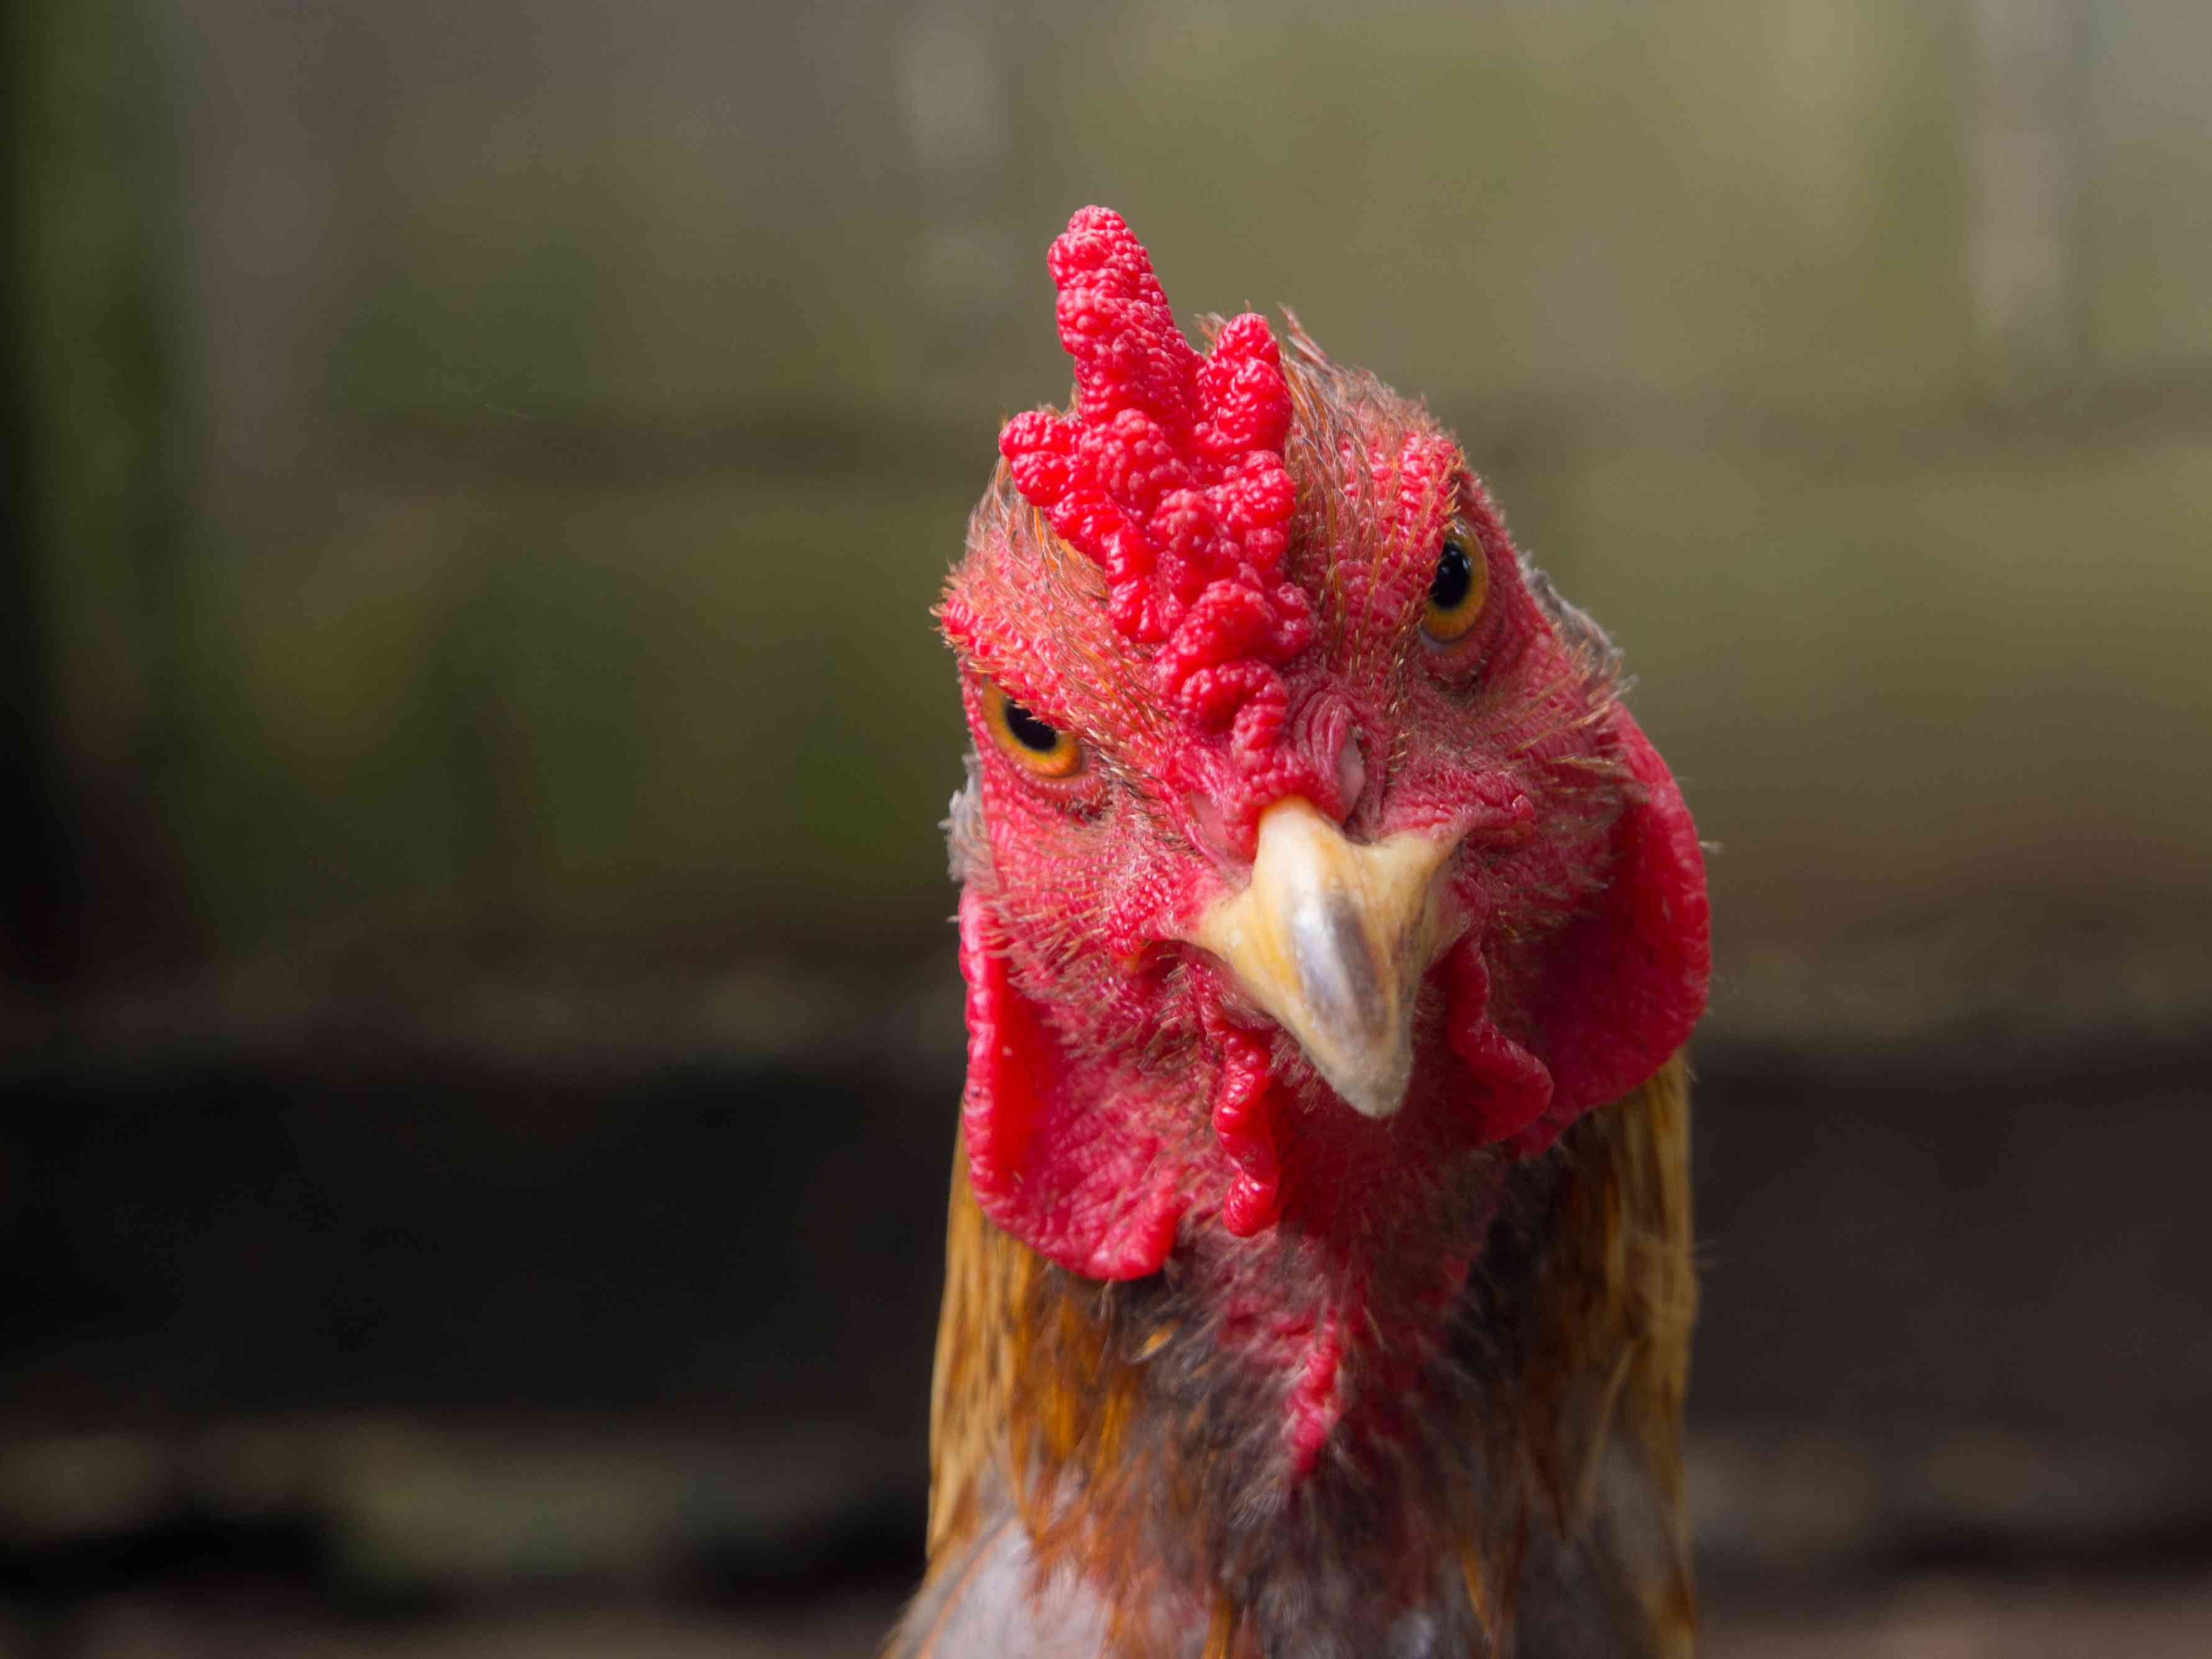 Close-up of a rooster's face.